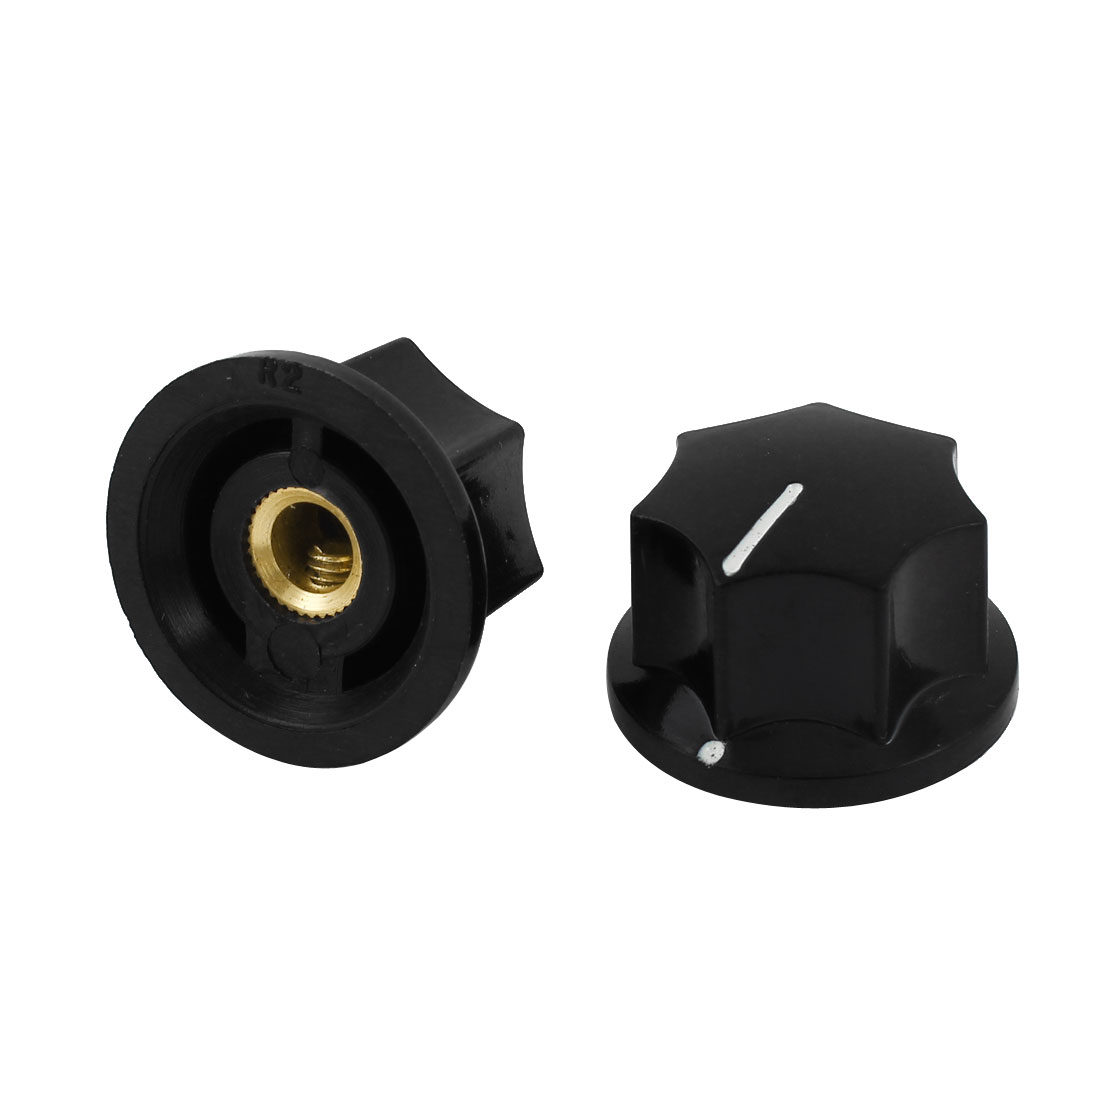 2 Pcs 6mm Shaft Dia Volume Control Plastic Potentiometer Knobs Caps Black